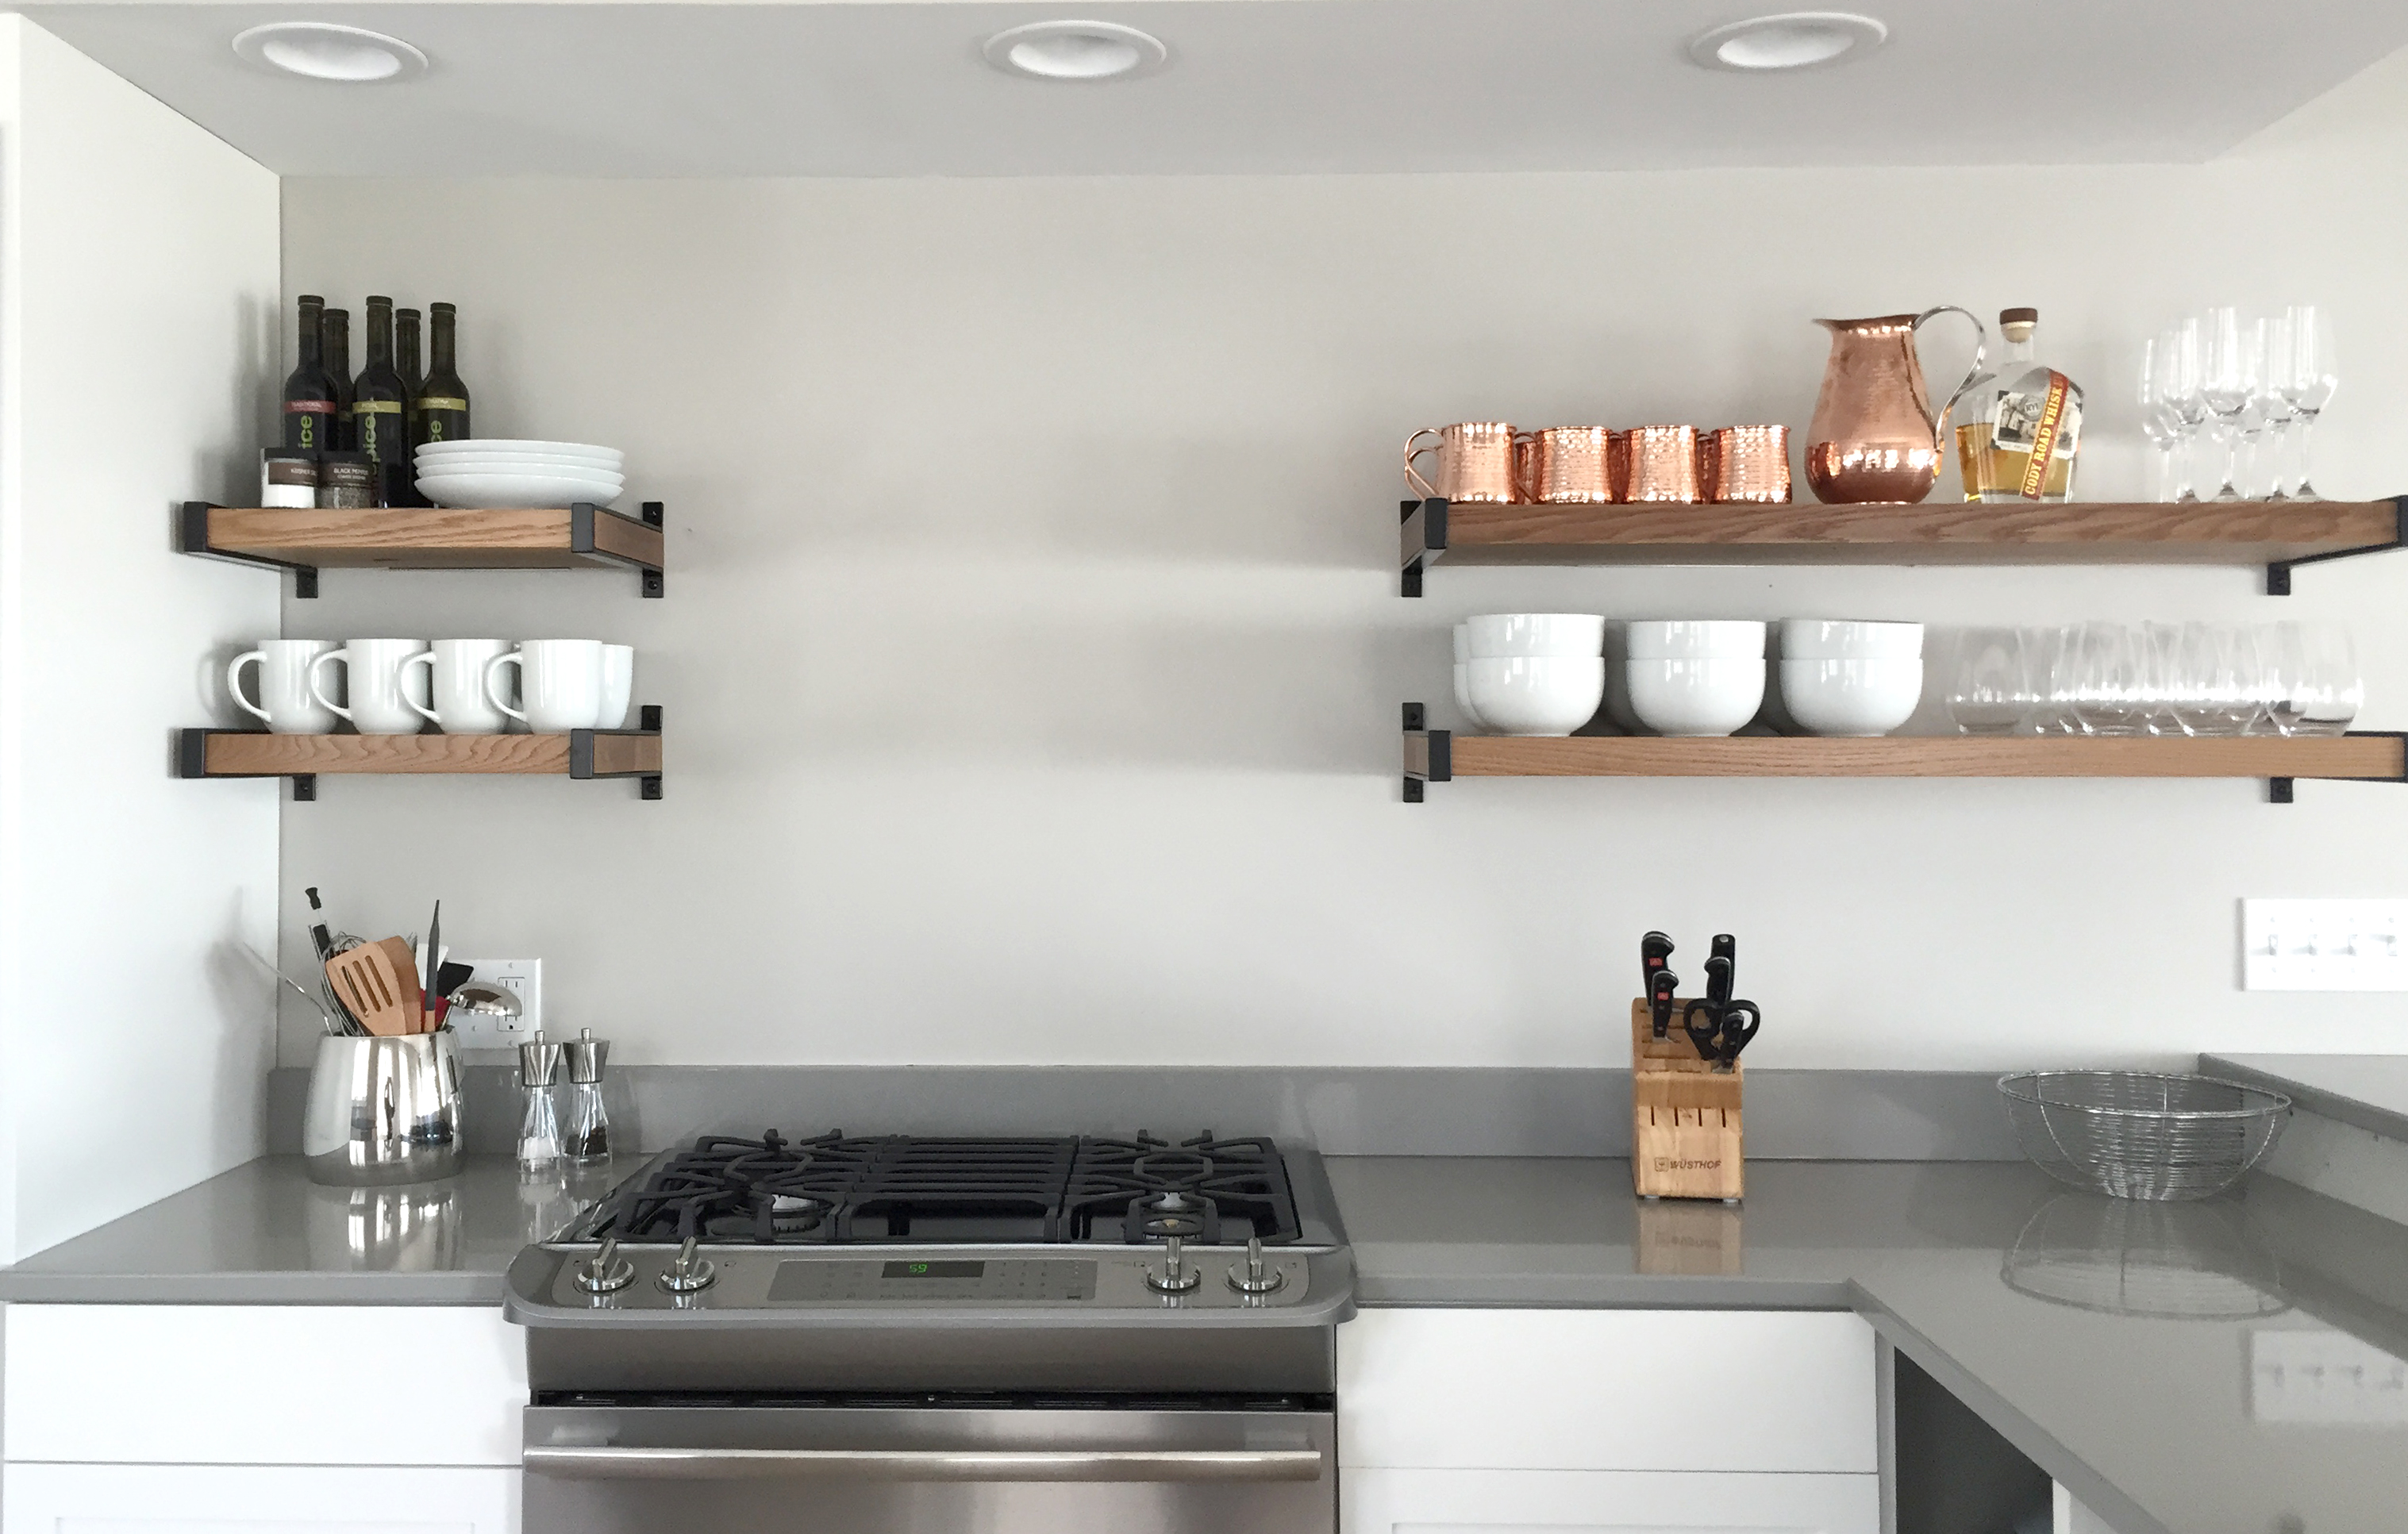 Superb img of wood and steel open shelving modern kitchen storage iowa 2015 with #81624A color and 3034x1933 pixels